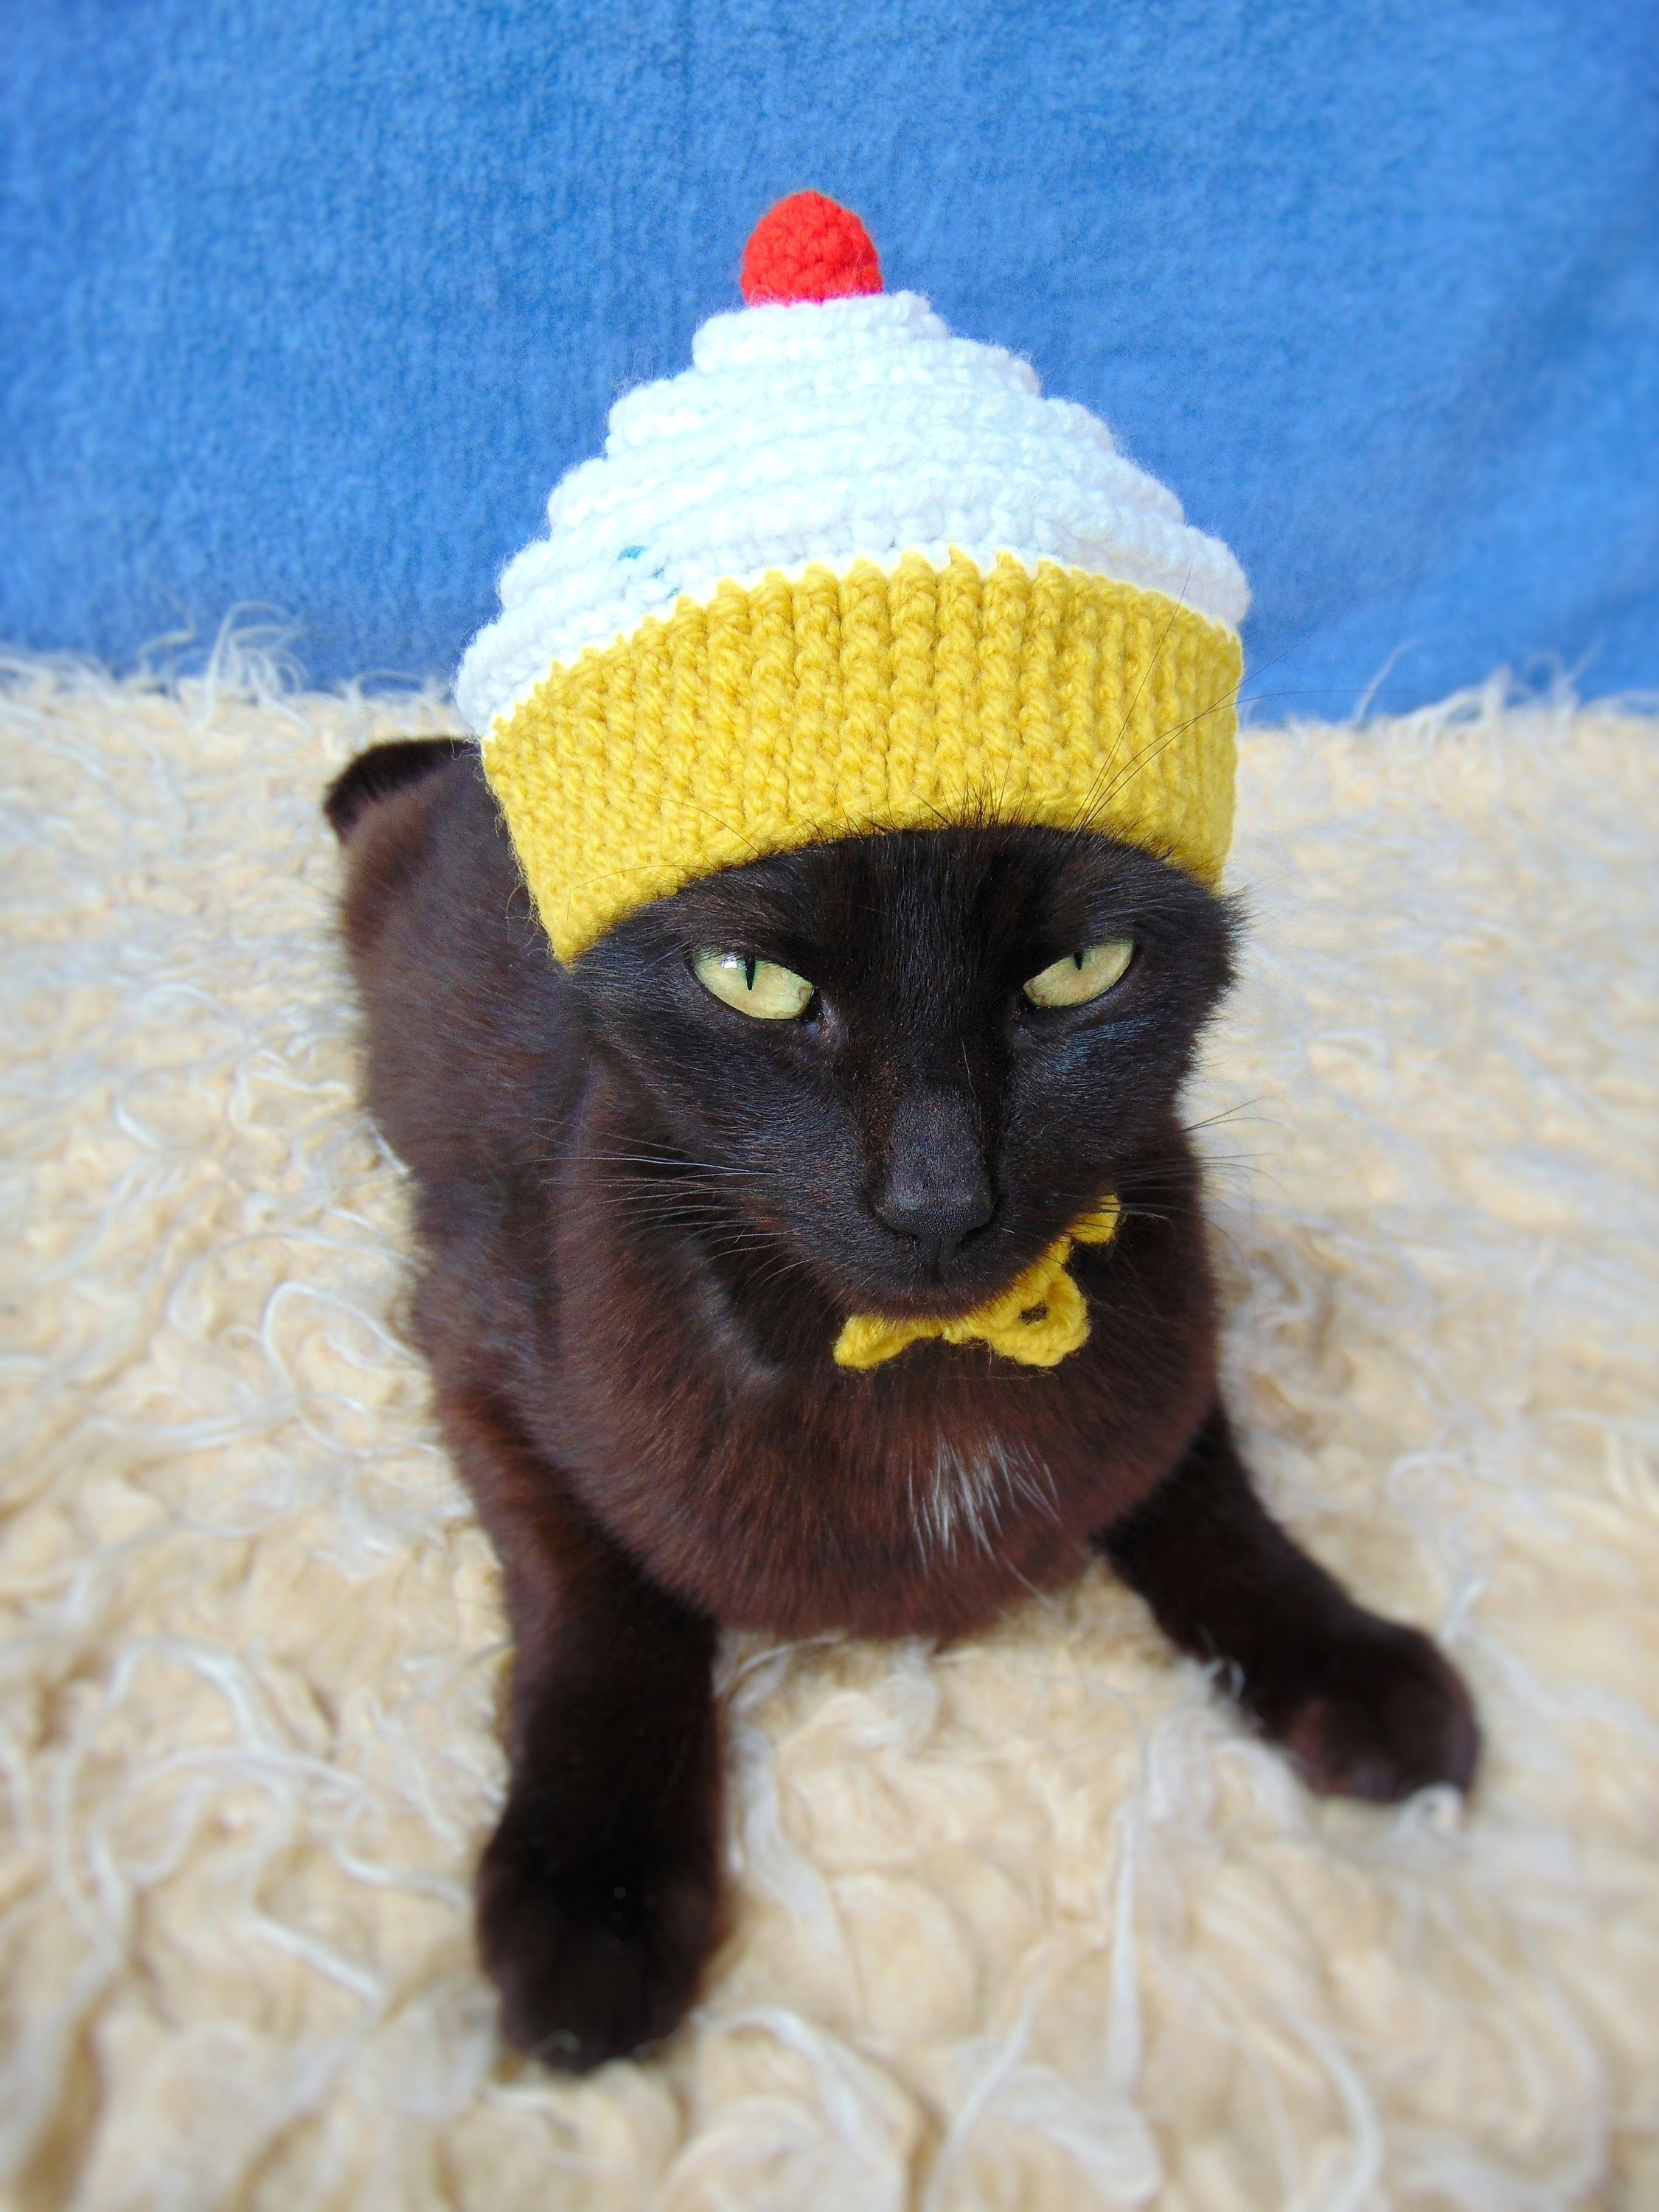 Cupcake Hat For Cat Cupcake Pet Costume Gift For Cat Lover Etsy Cute Cat Costumes Pet Costumes Cat Accessories